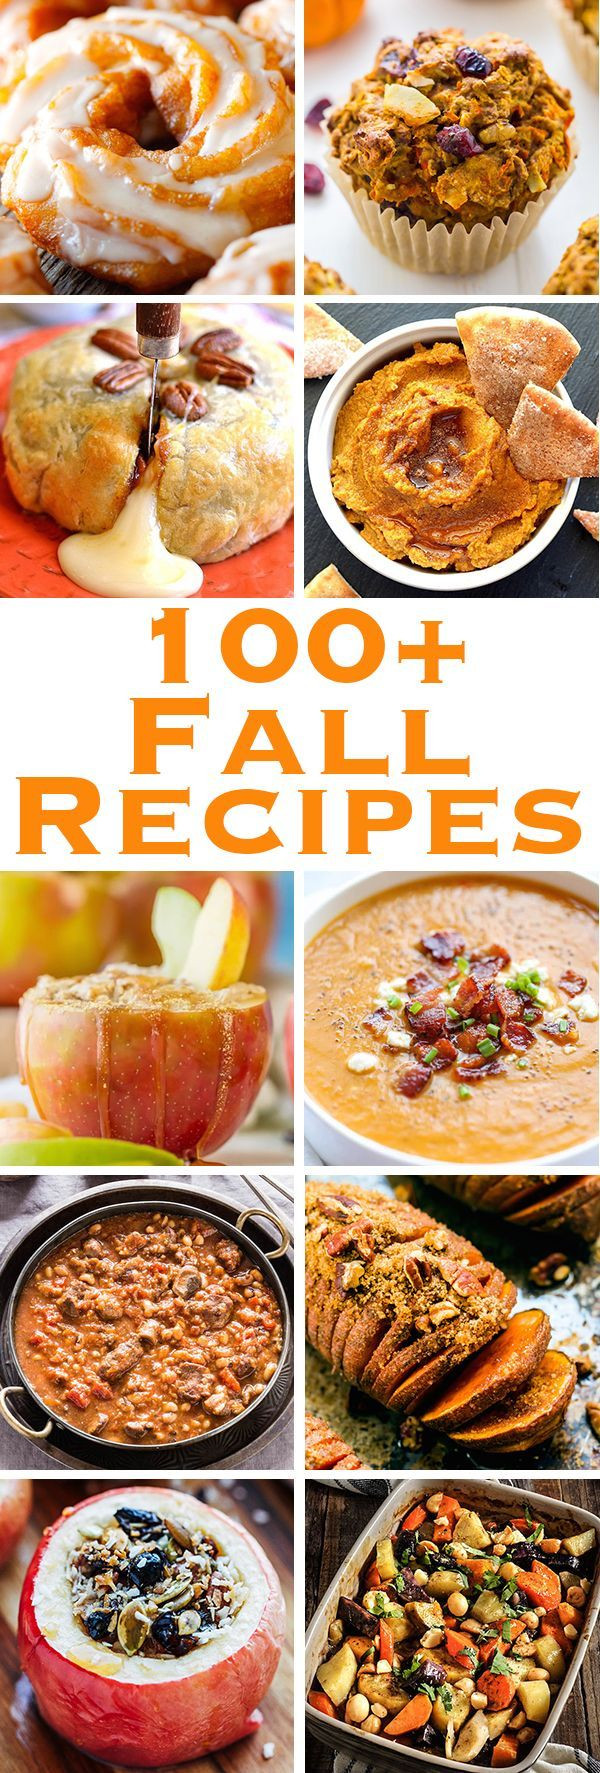 Healthy Fall Appetizers  Best 20 Fall appetizers ideas on Pinterest